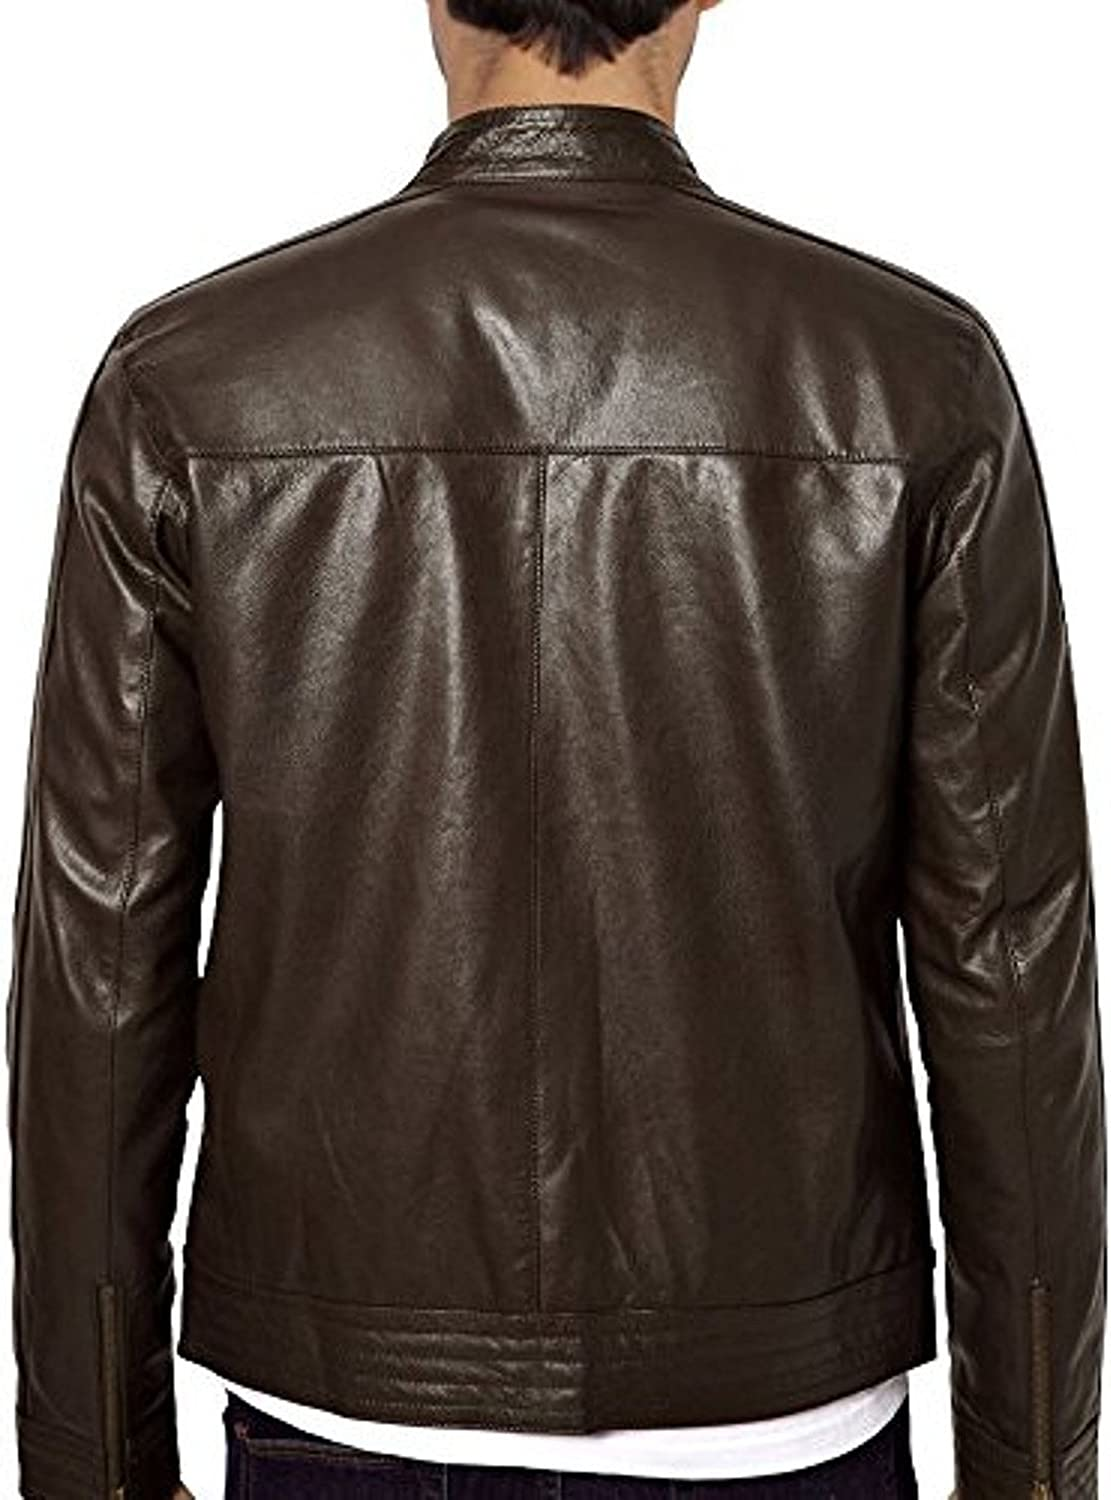 Kingdom Leather New Men Quilted Leather Jacket Soft Lambskin Biker Bomber X681